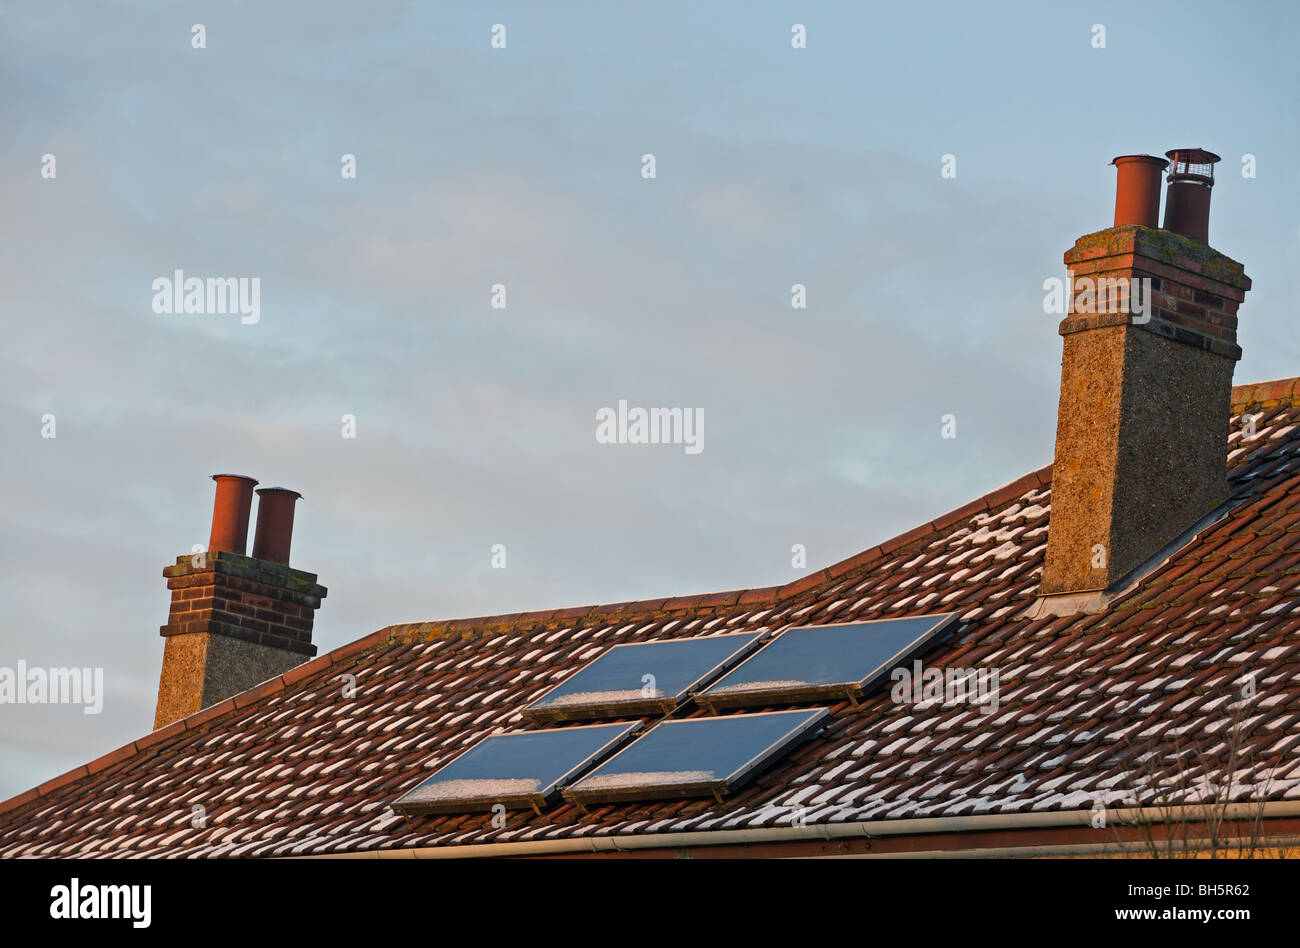 Solar panels fitted to the roof of a house in the UK. - Stock Image